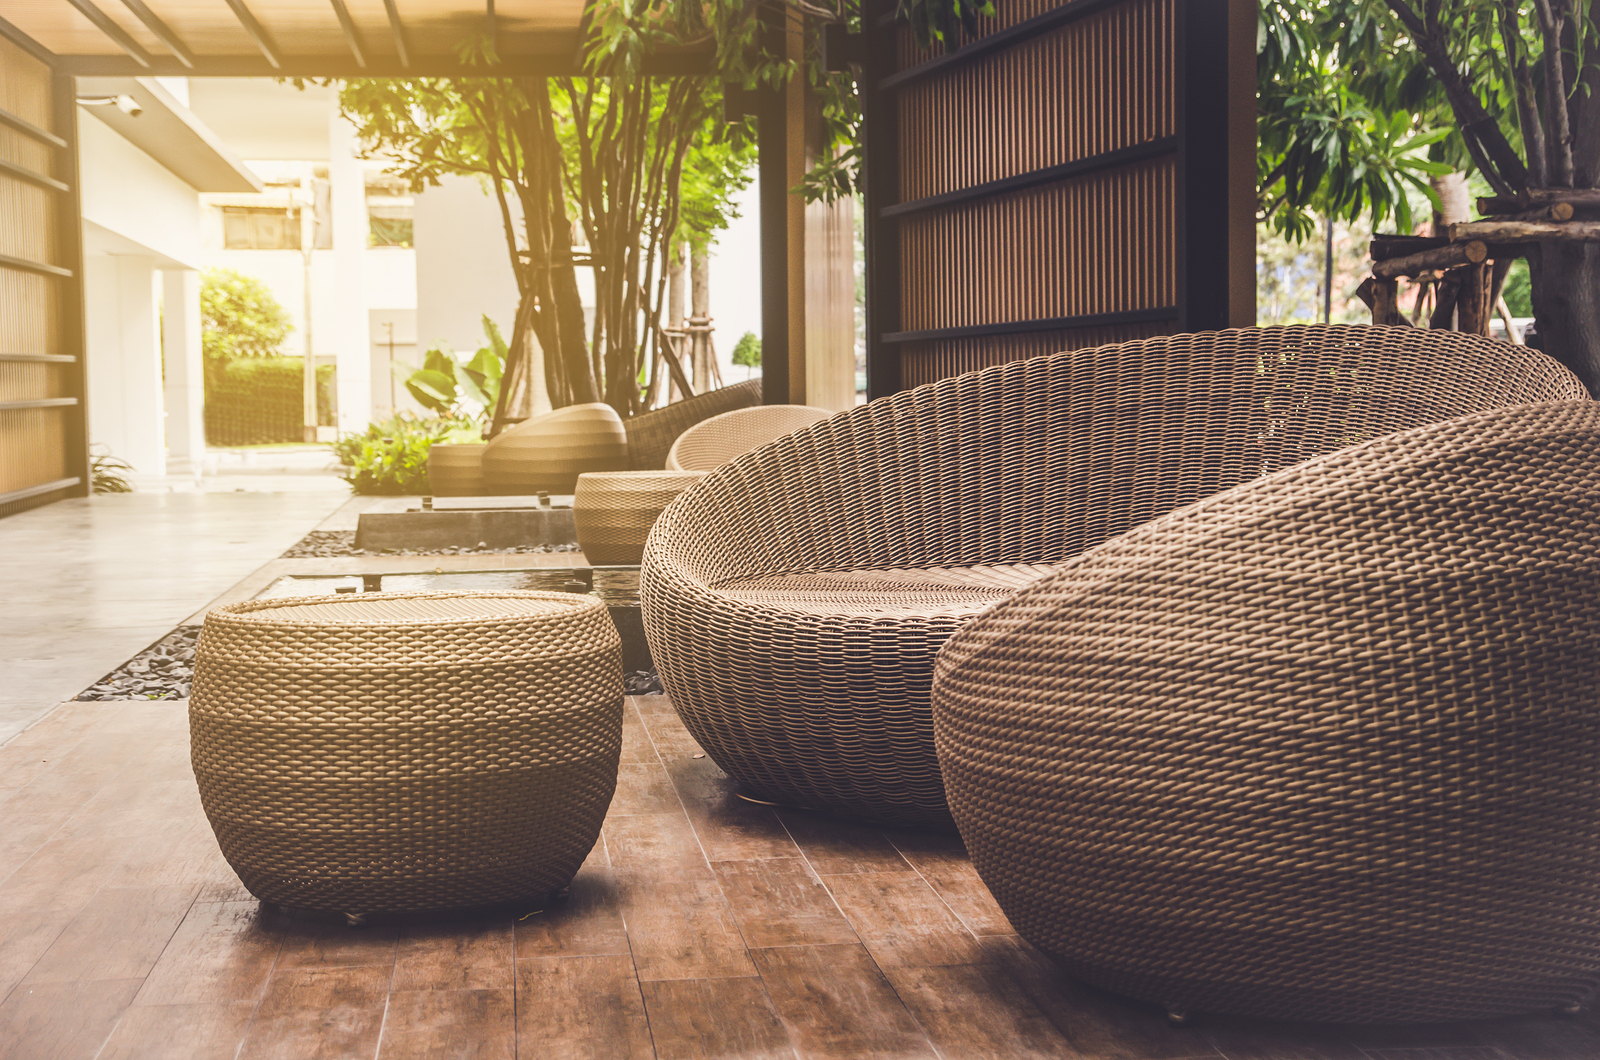 Outdoor furniture, rattan, interior, lounge set, saigon, ho chi minh city, grapevyne